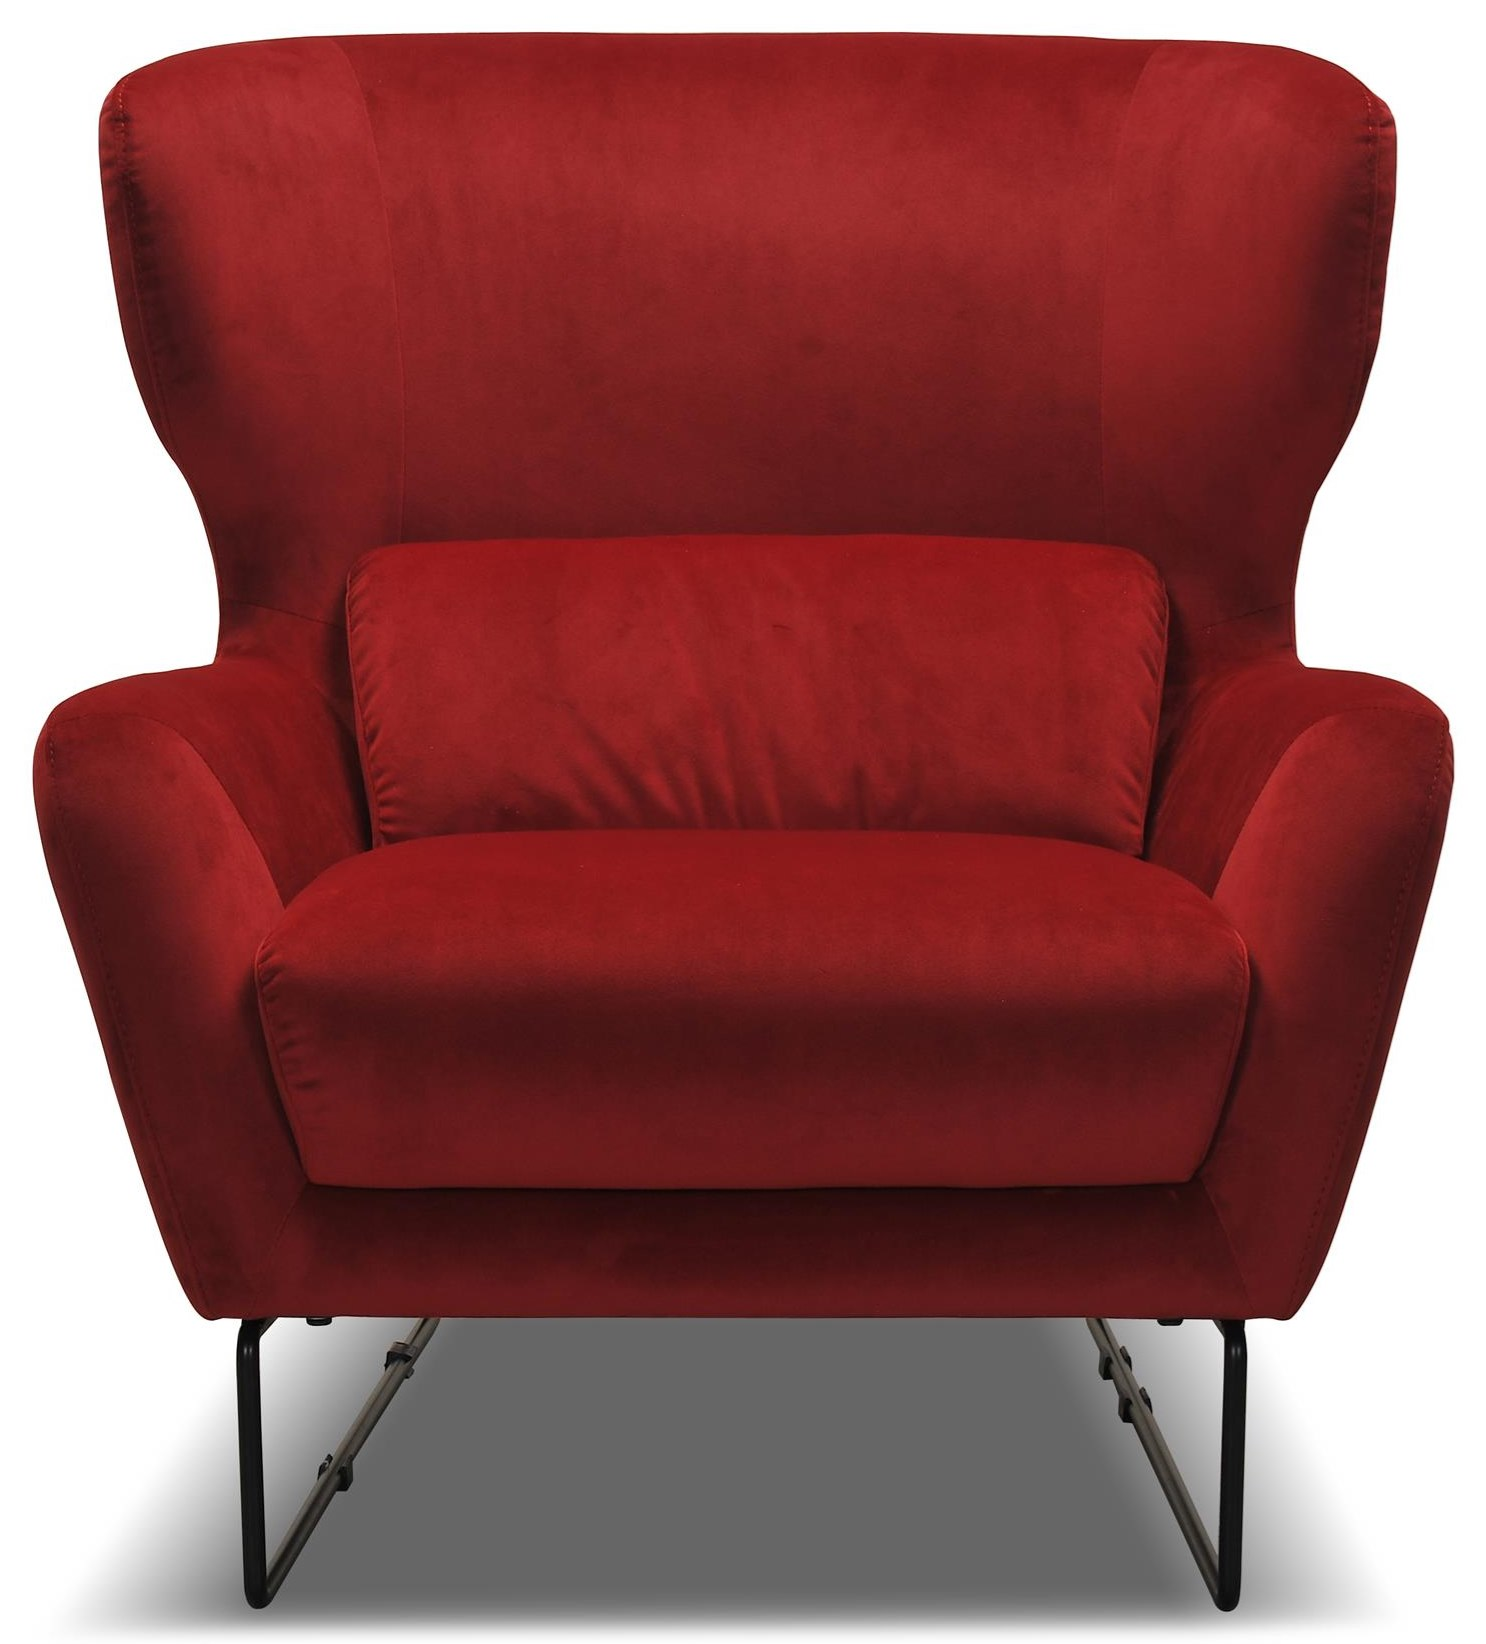 Red Contemporary Velvet Chair